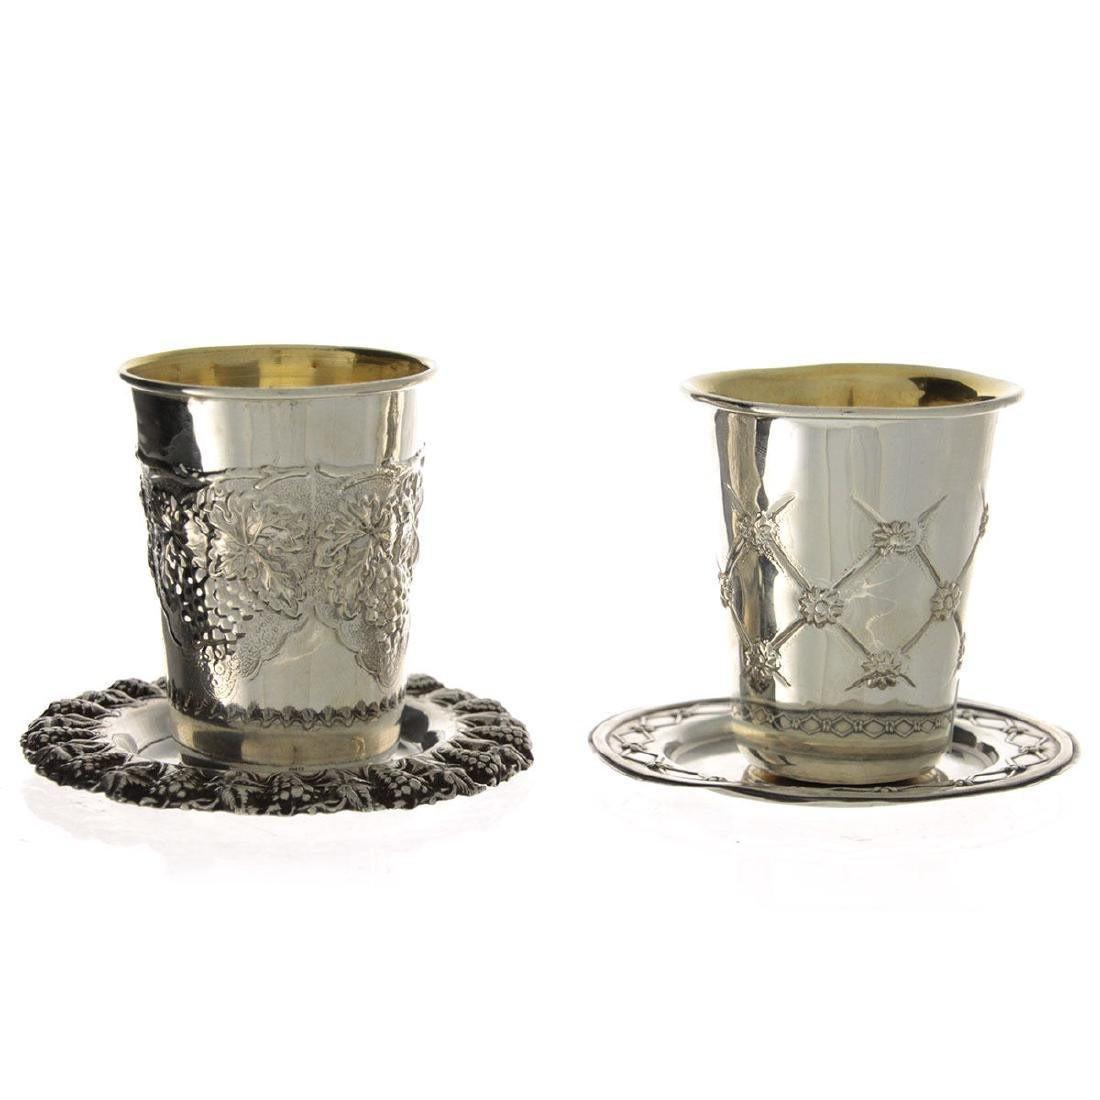 Two Sterling Silver Kiddush Cup and Coasters, Judaica.